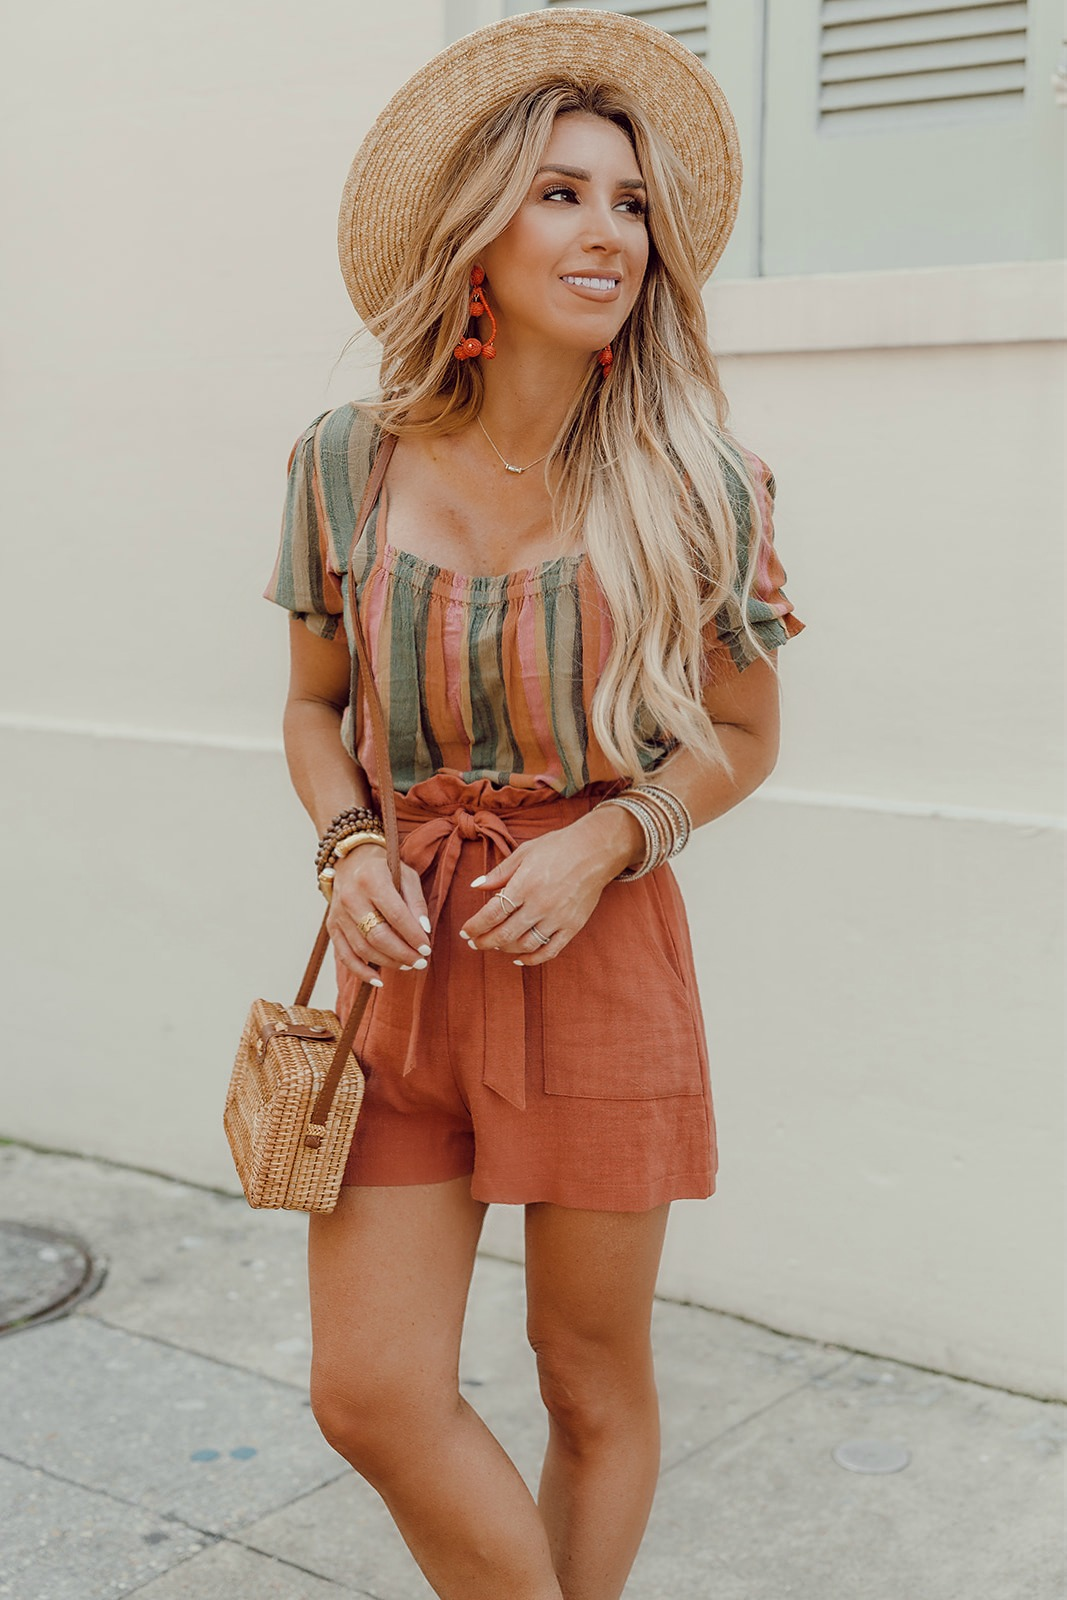 Boho crop top outfits